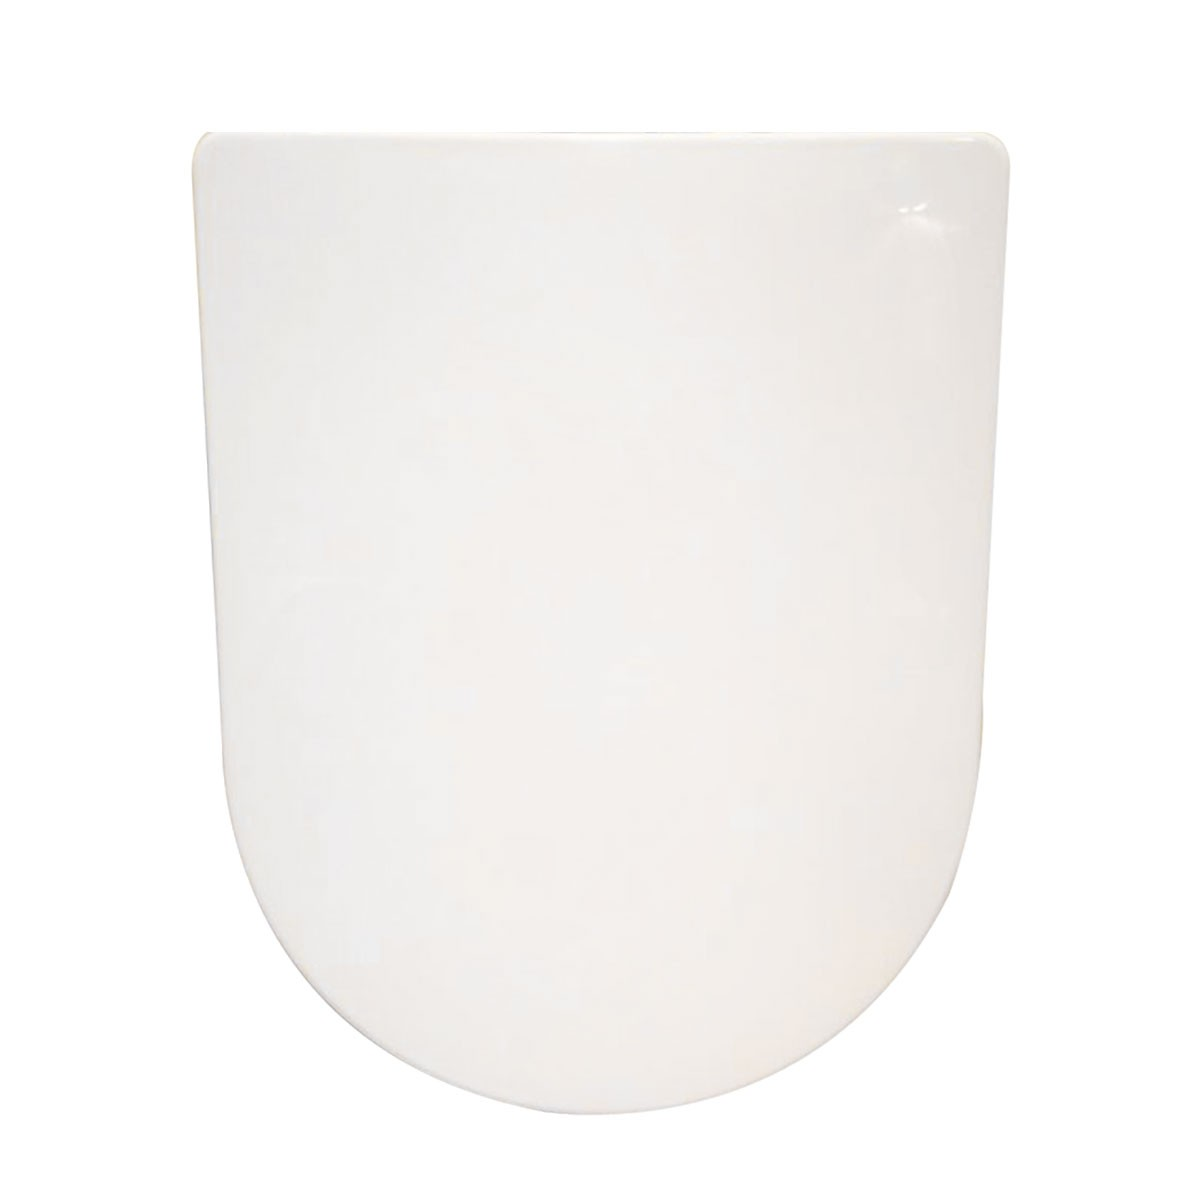 PP White Round-front Soft Close Toilet Seat with Cover (DK-CL-020)